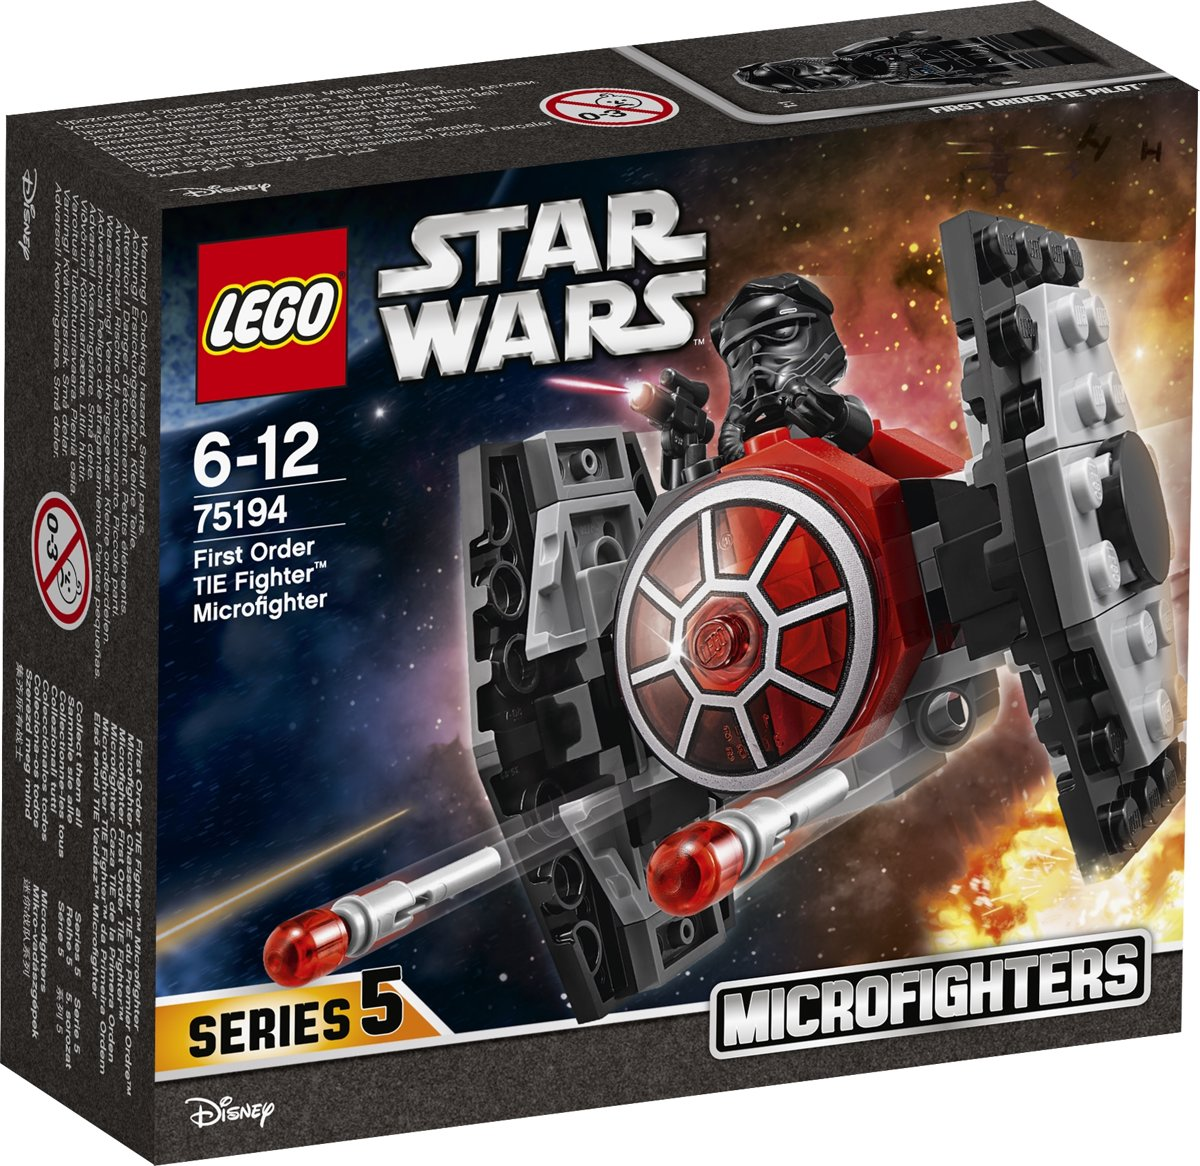 LEGO Star Wars First Order TIE Fighter Microfighter - 75194